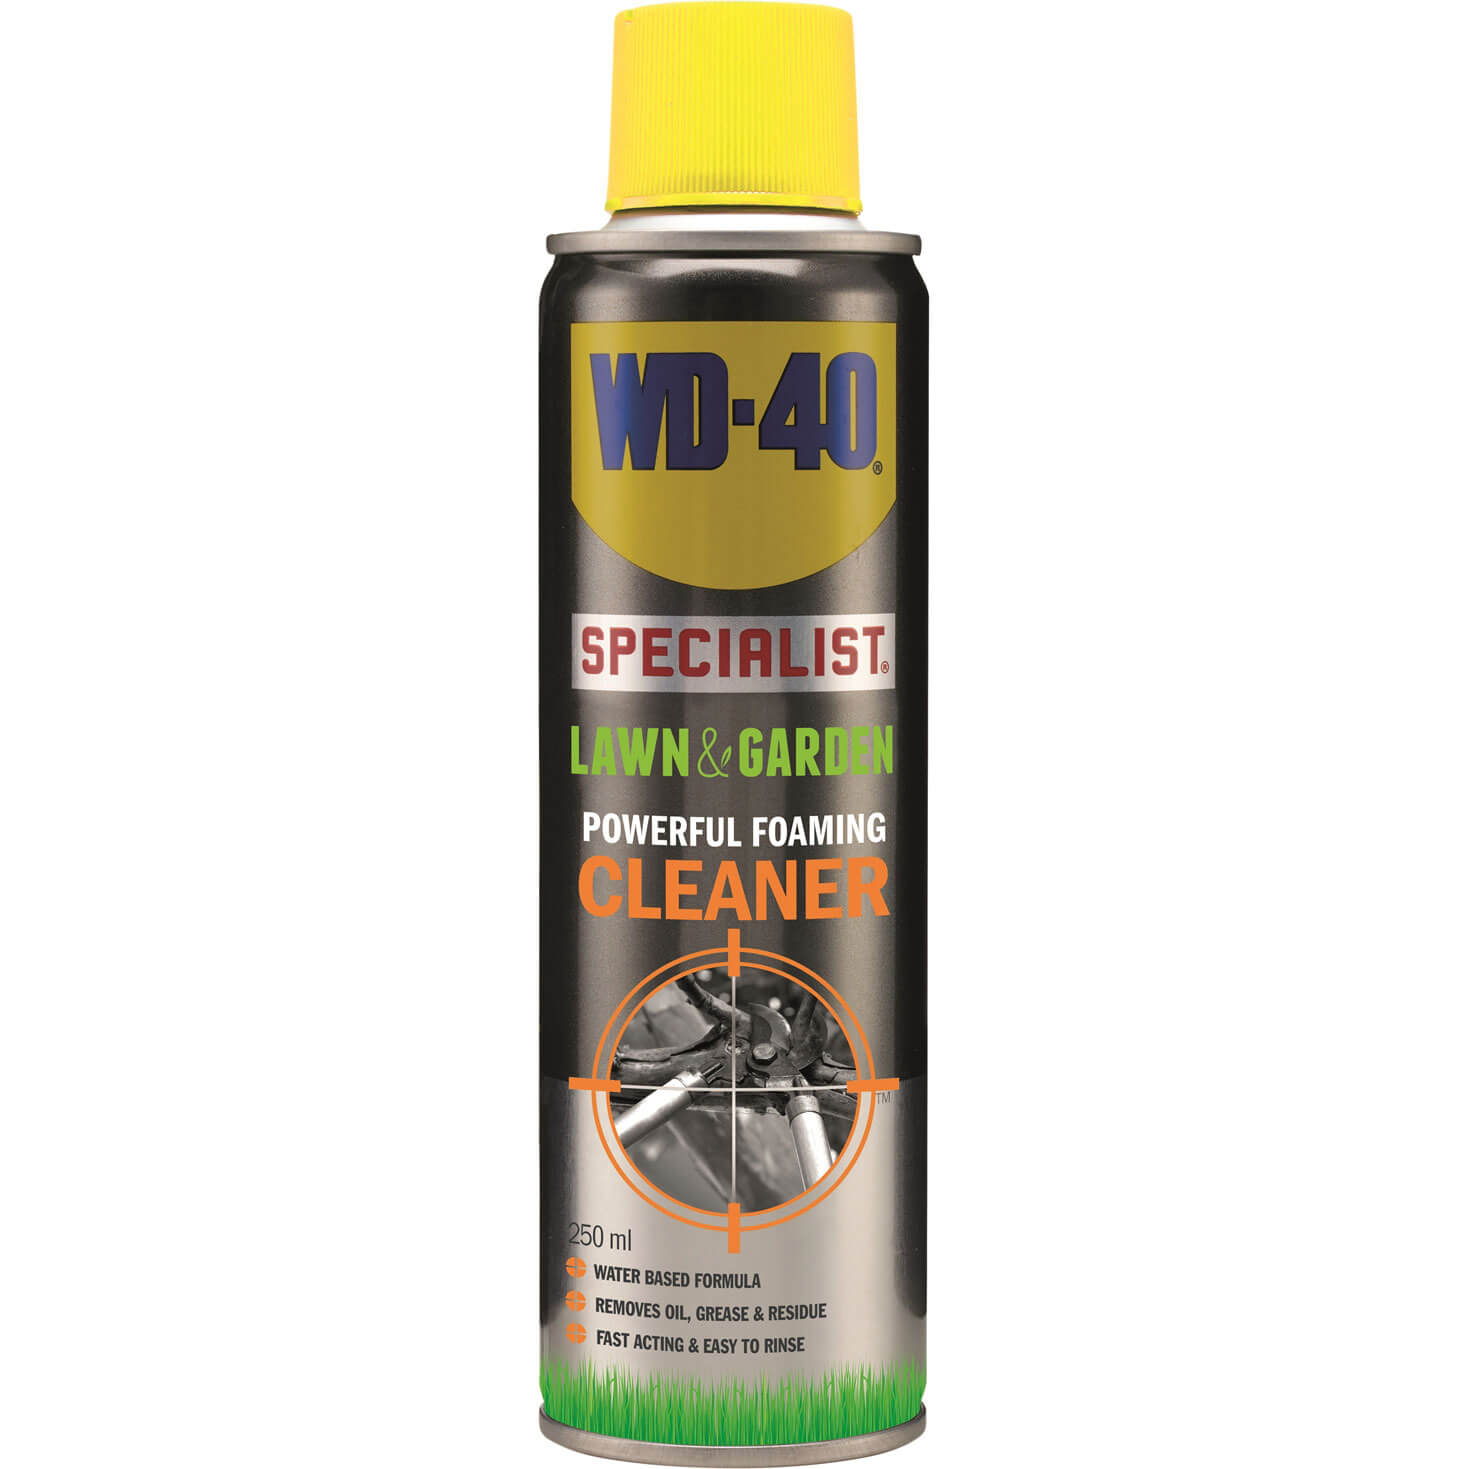 Image of WD40 Lawn & Garden Foaming Cleaner 250ml